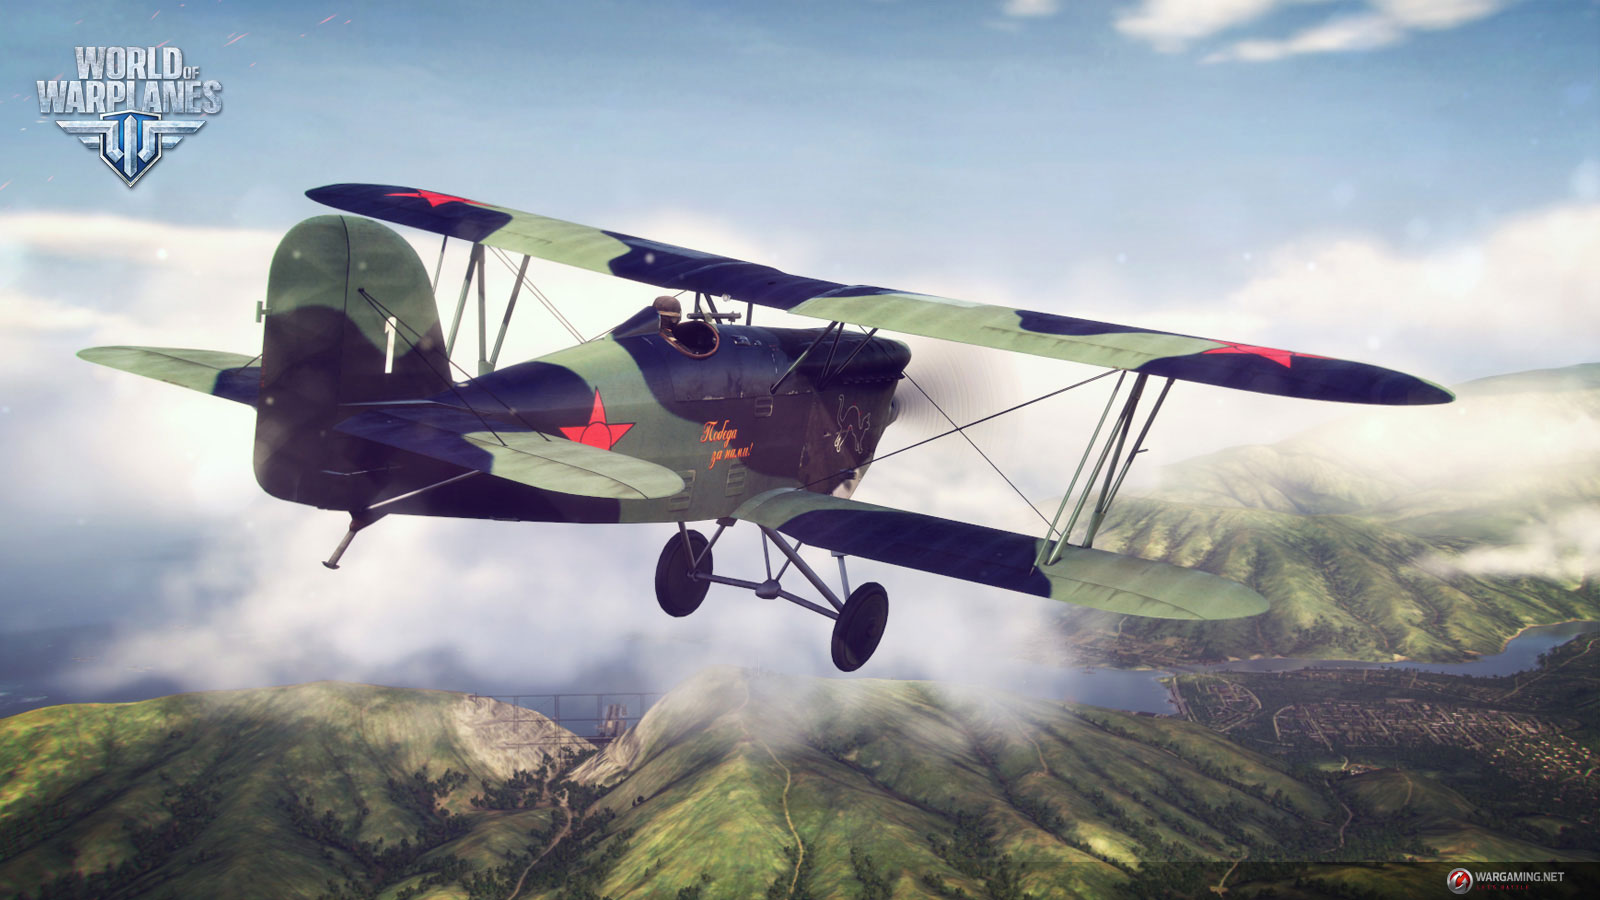 World of Warplanes 1.5 anunciado